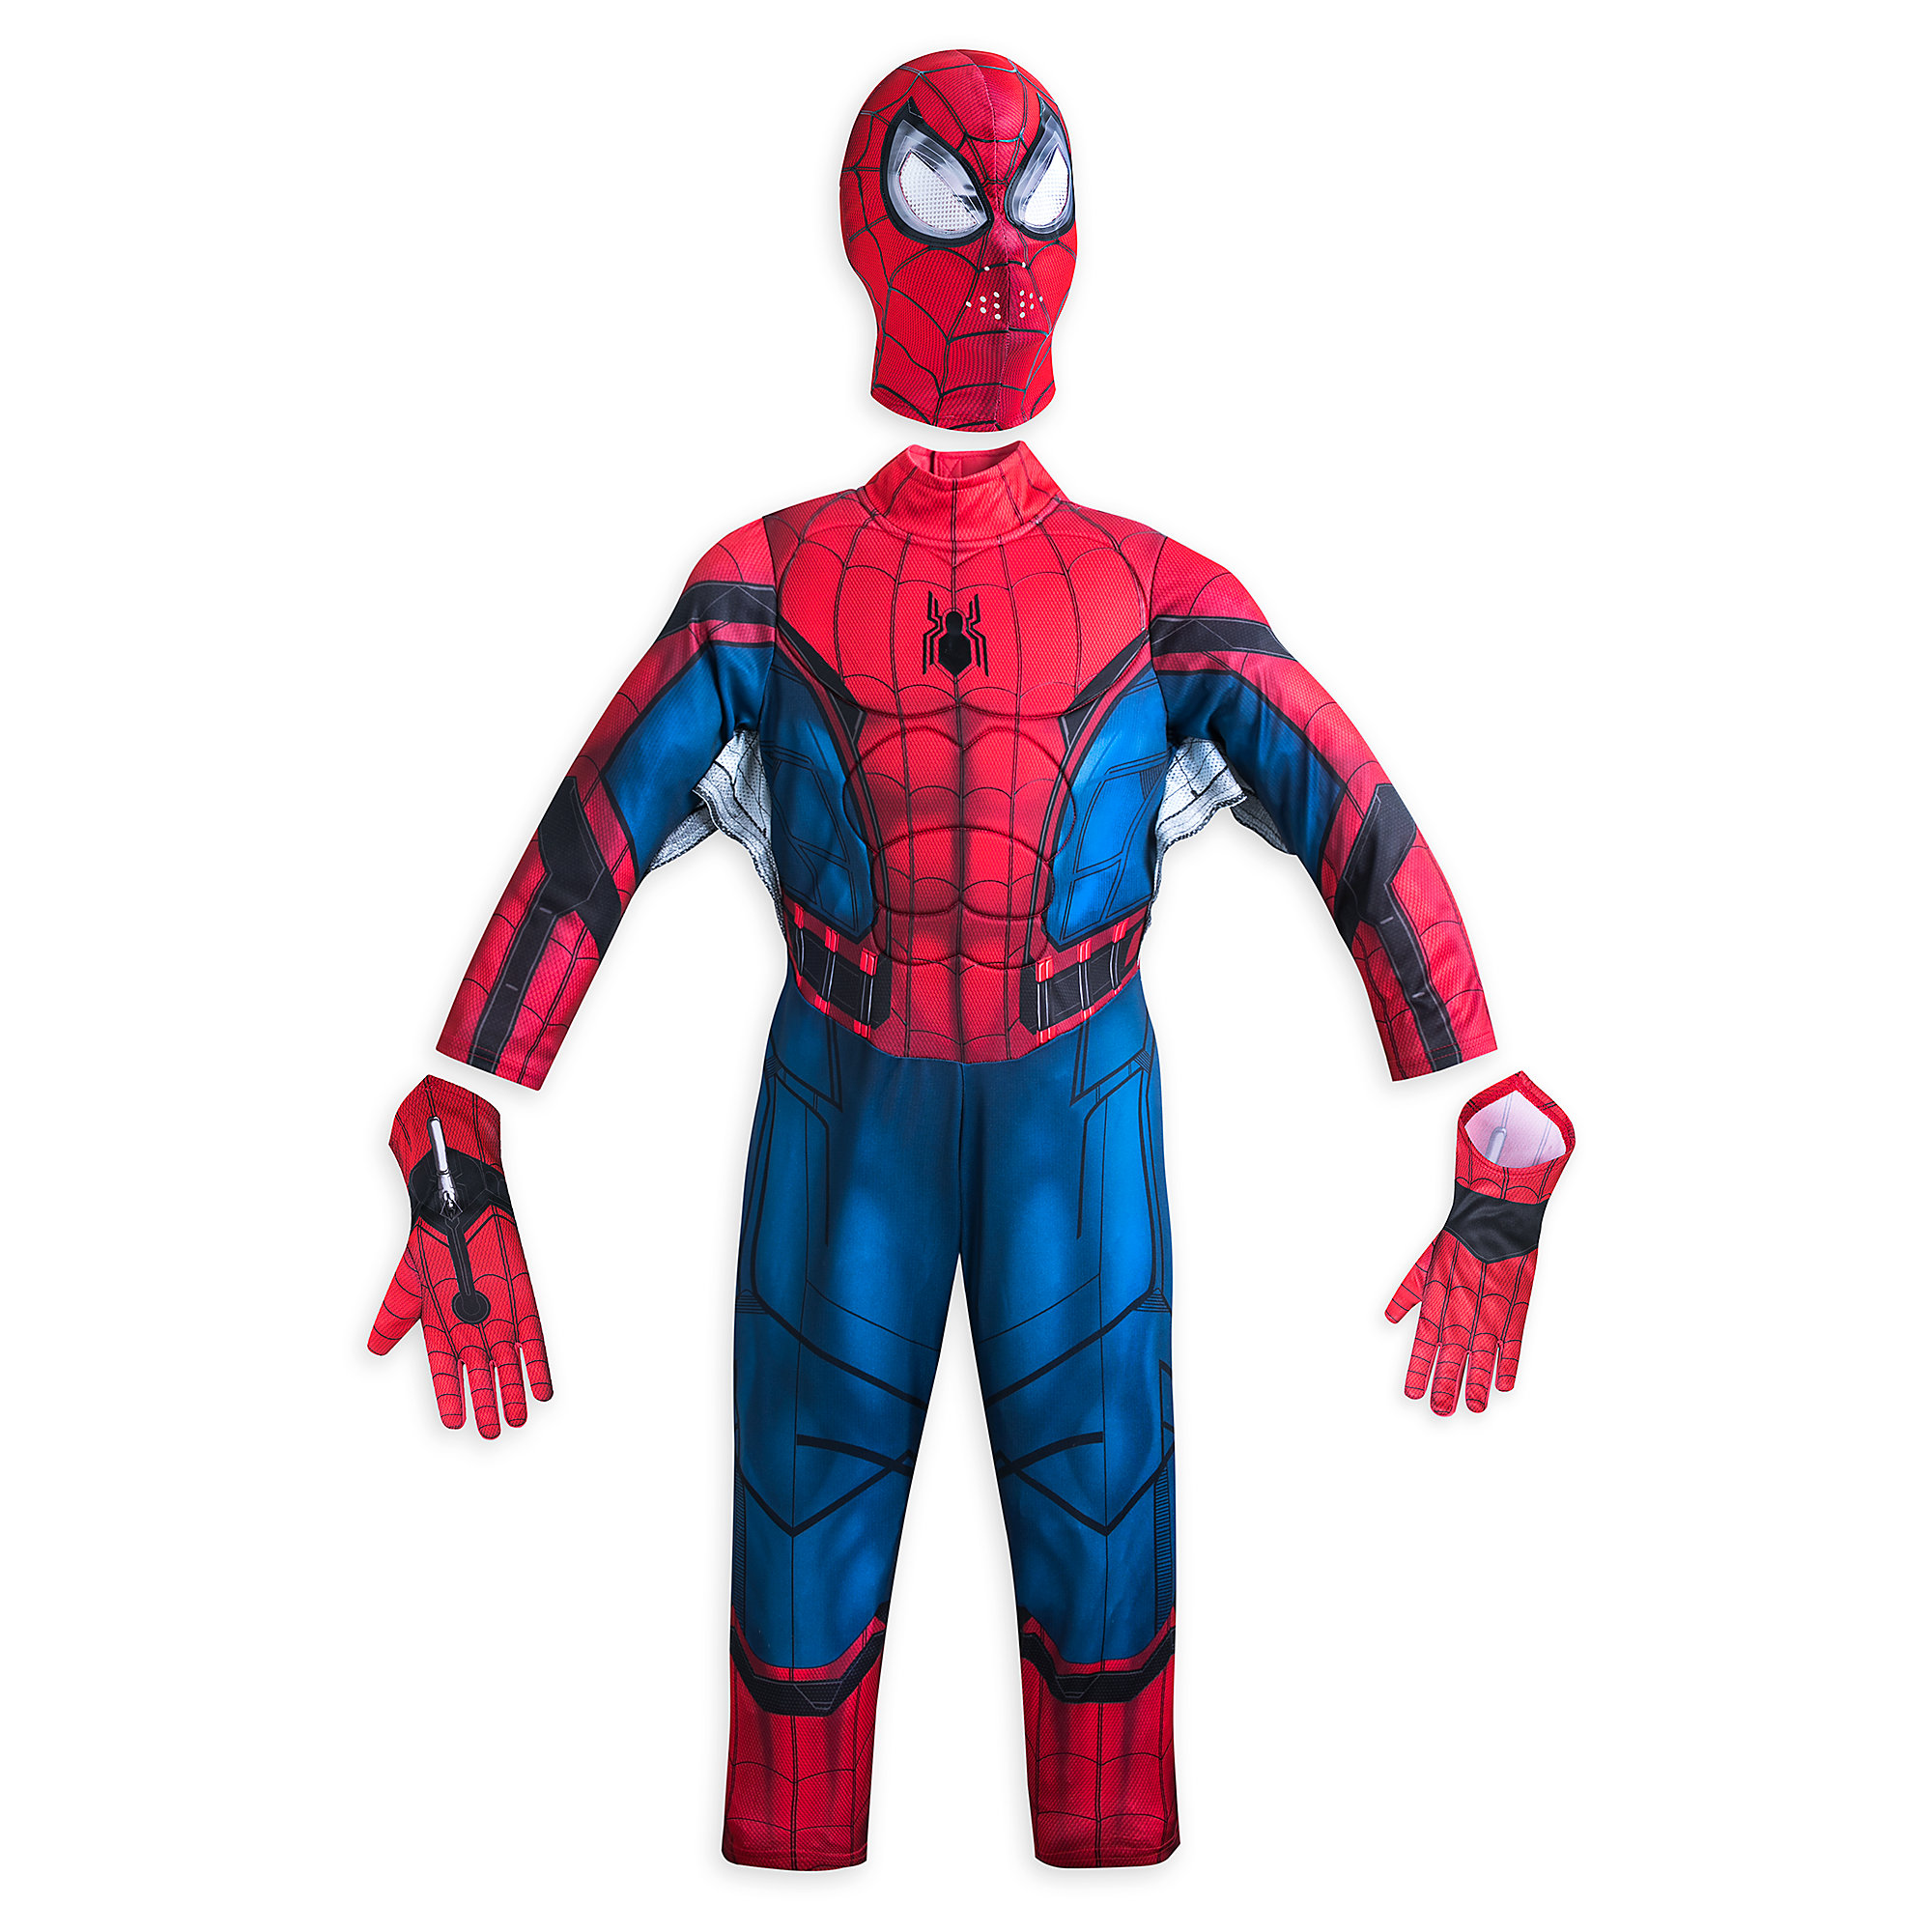 Spider-Man Costume for Kids - Spider-Man: Homecoming